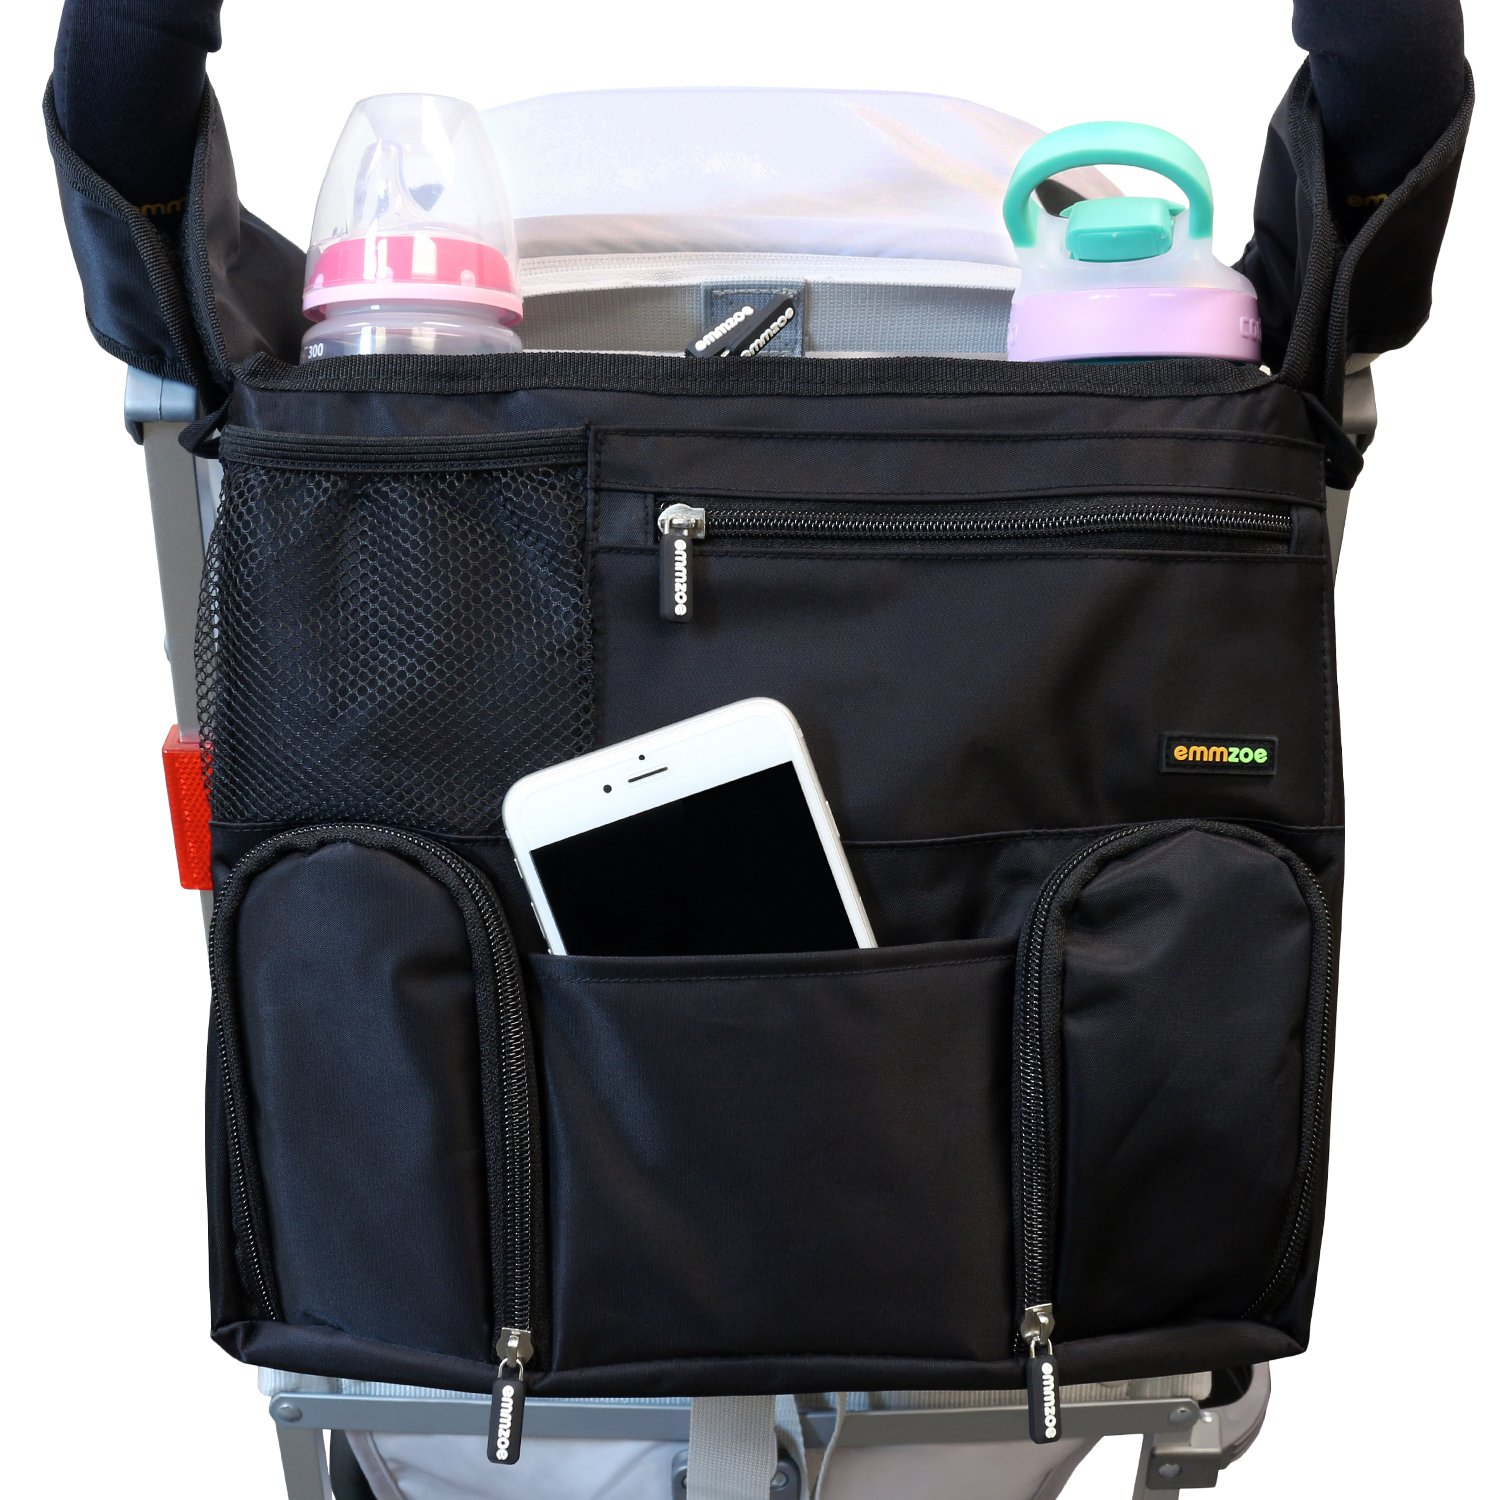 Books Wipes Tablets Food Emmzoe Universal Fit Stroller Organizer All-in-One Insulated Multifunctional Storage Compartments for Drinks Diapers